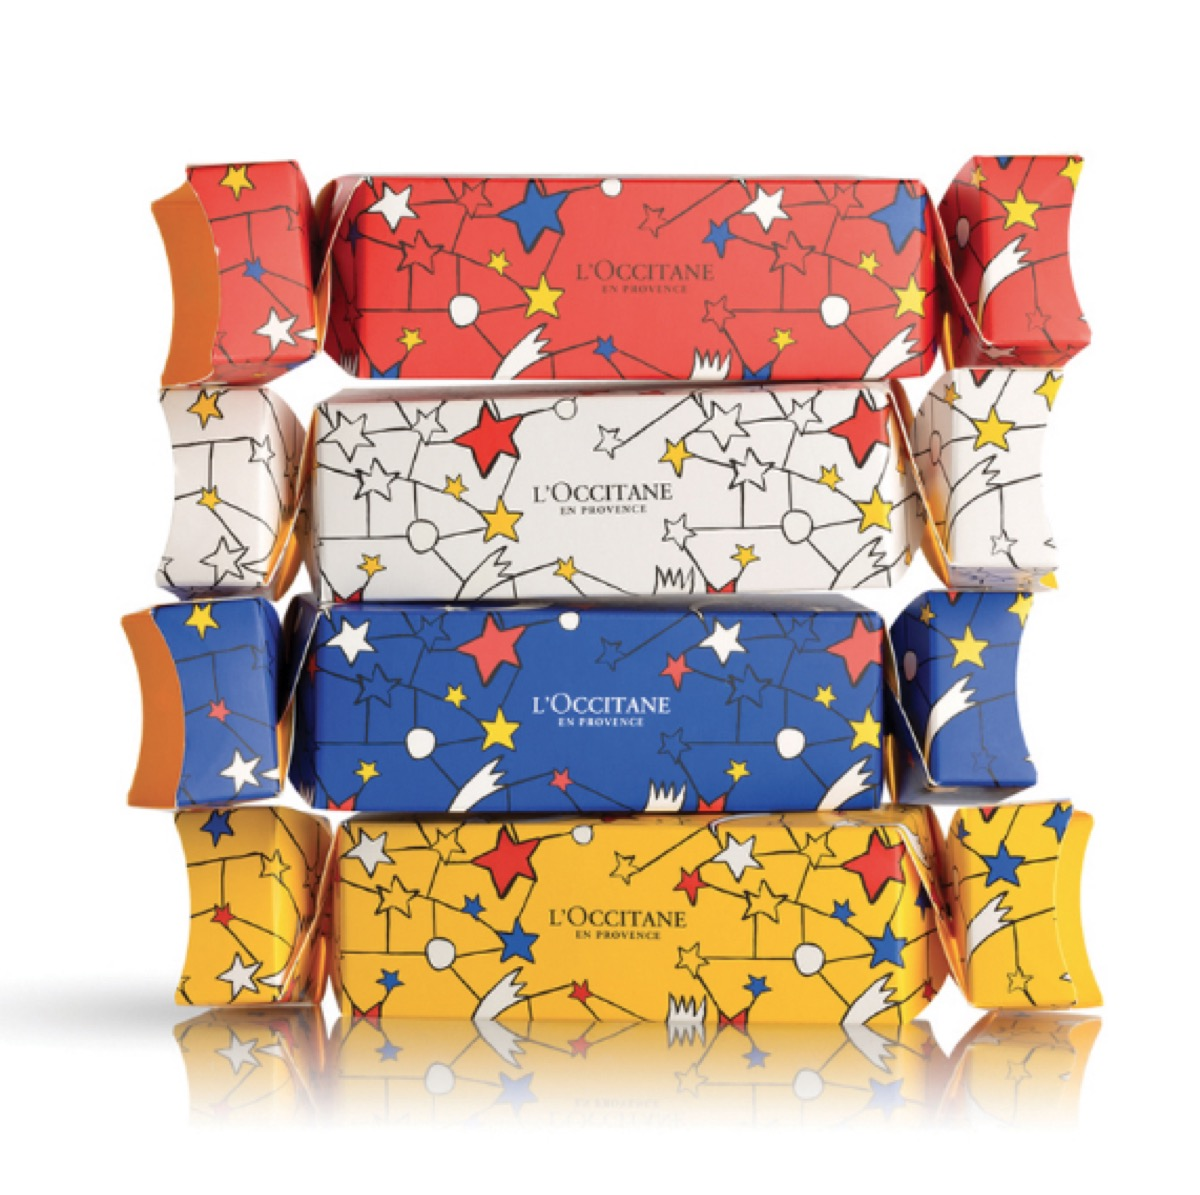 L'Ocitane Holiday Crackers buy after holidays